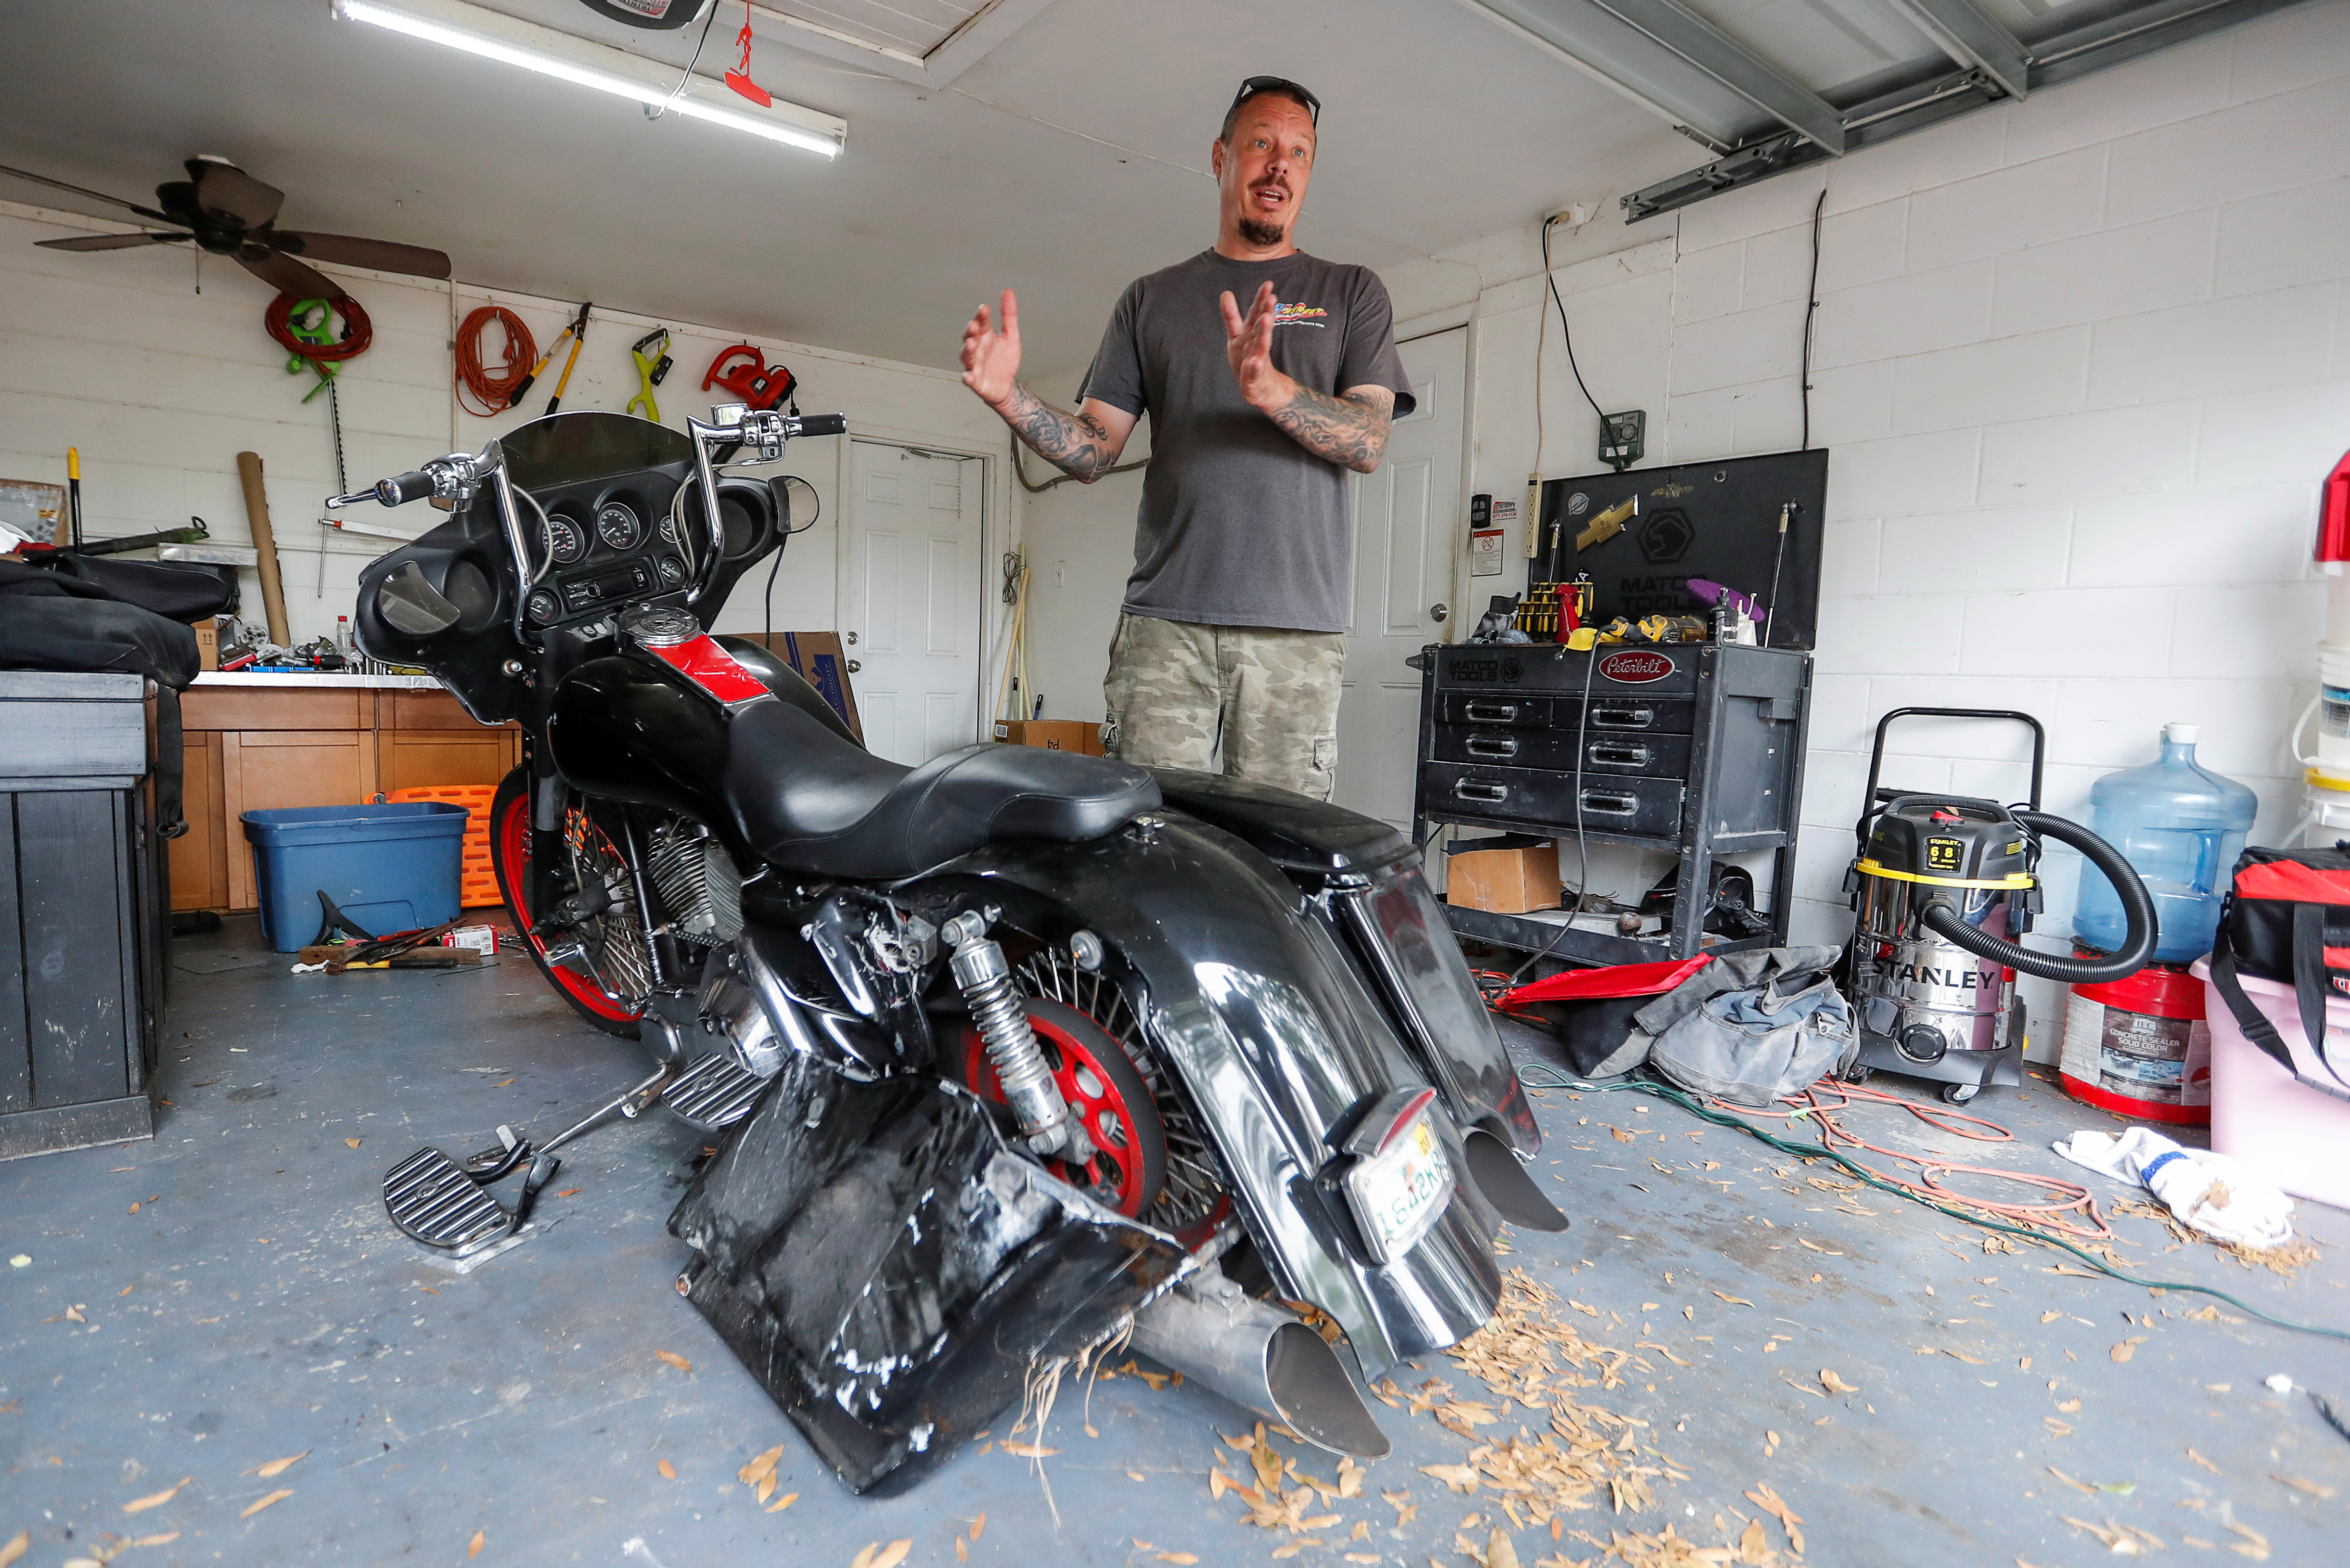 Jesse Ohlau stands next to his wrecked motorcycle as he speaks with Reuters at his home in Brandon, Florida, U.S., March 29, 2021. Picture taken March 29, 2021.  REUTERS/Joe Skipper